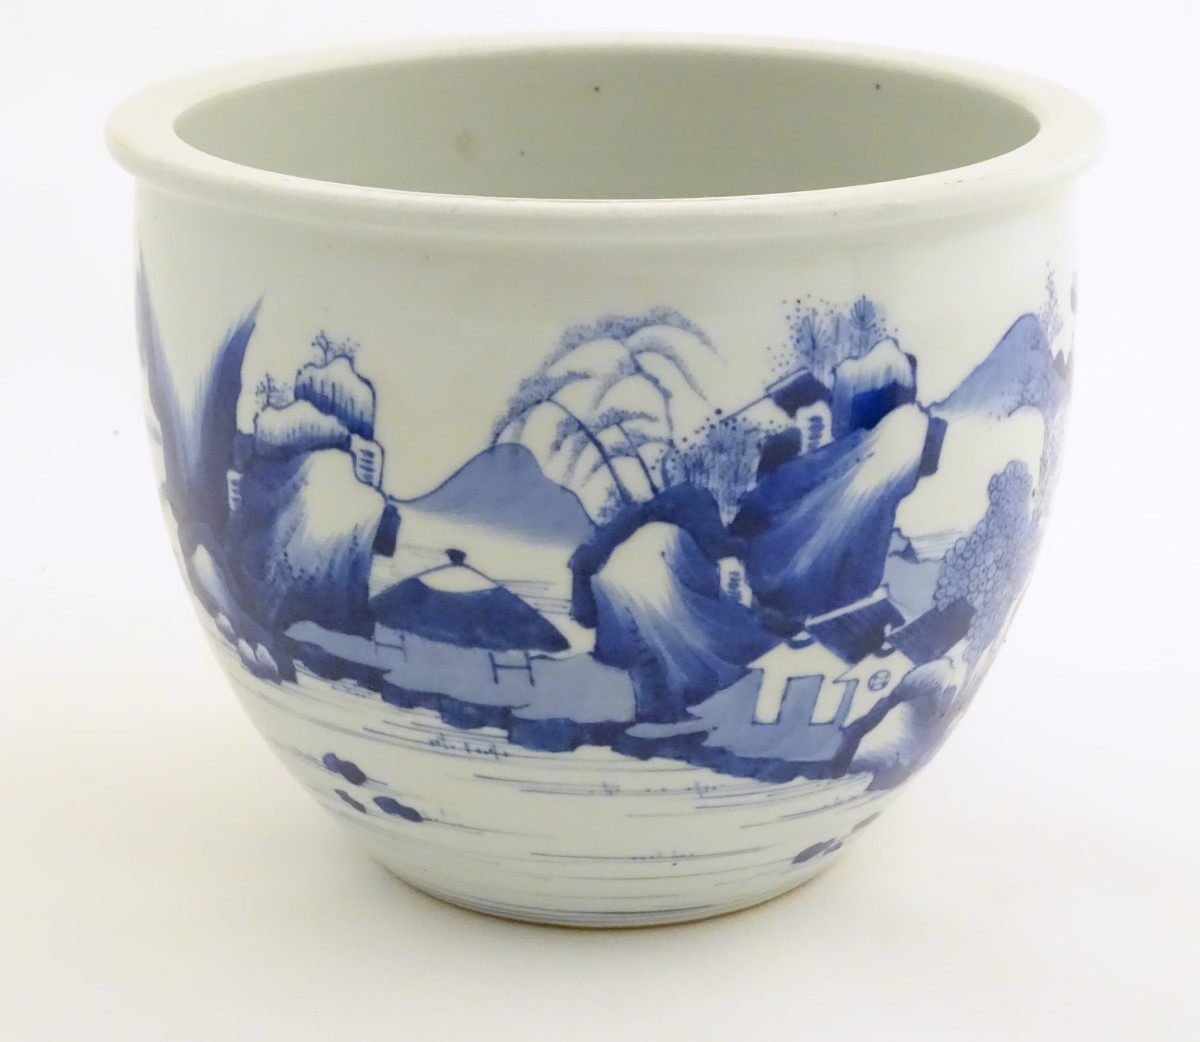 Lot 4 - A Chinese blue and white jardiniere decorated with a mountainous landscape scene with figures,